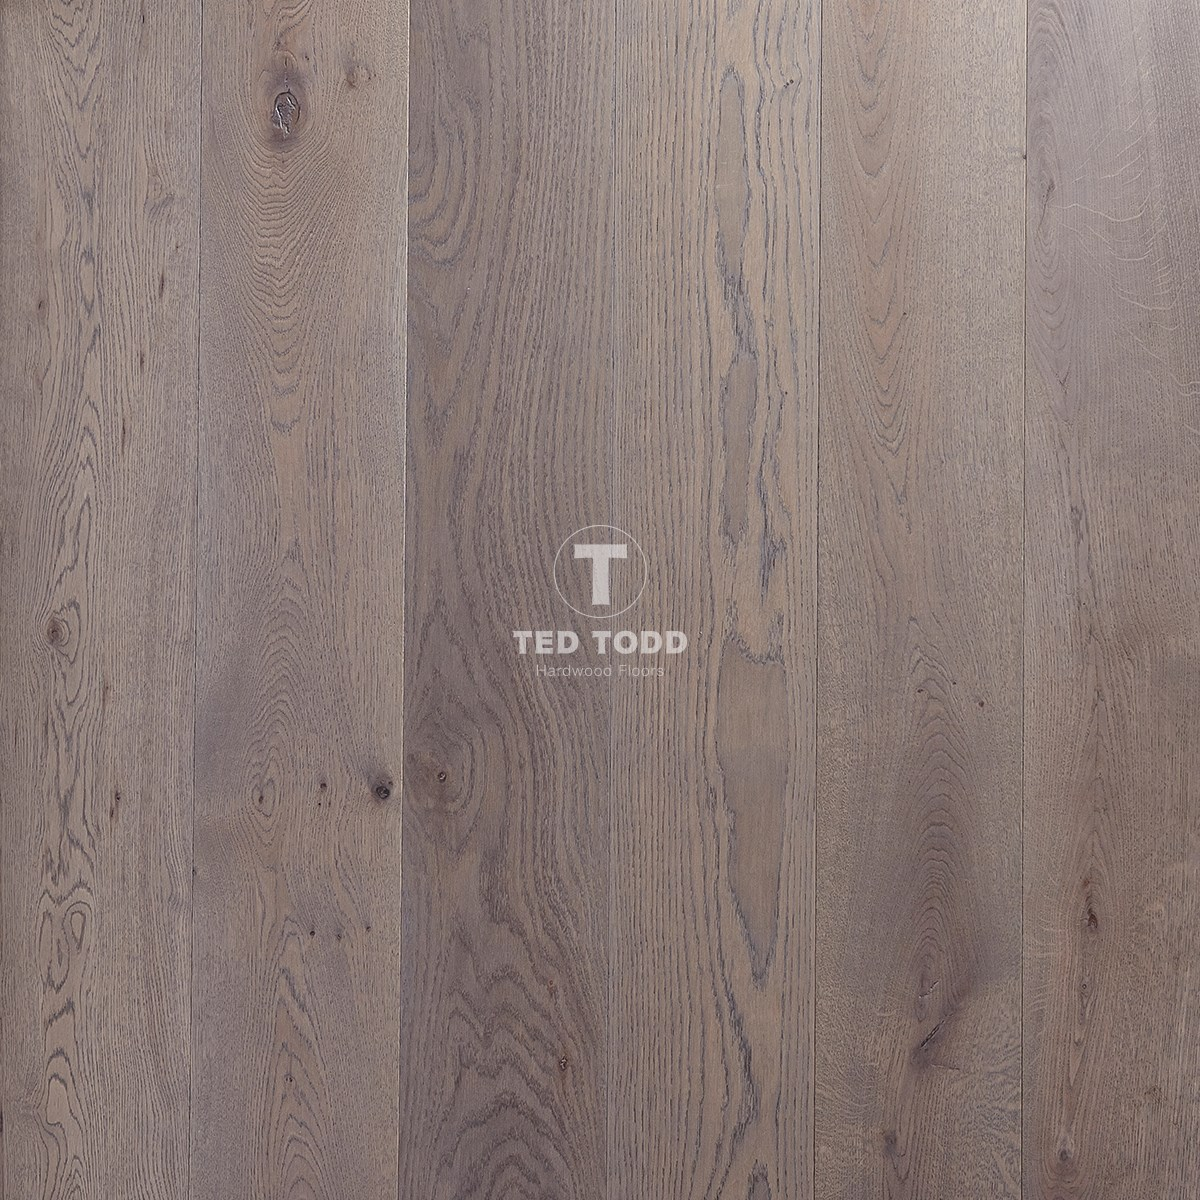 Kinsley PROJ018 | Ted Todd Project Engineered Wood